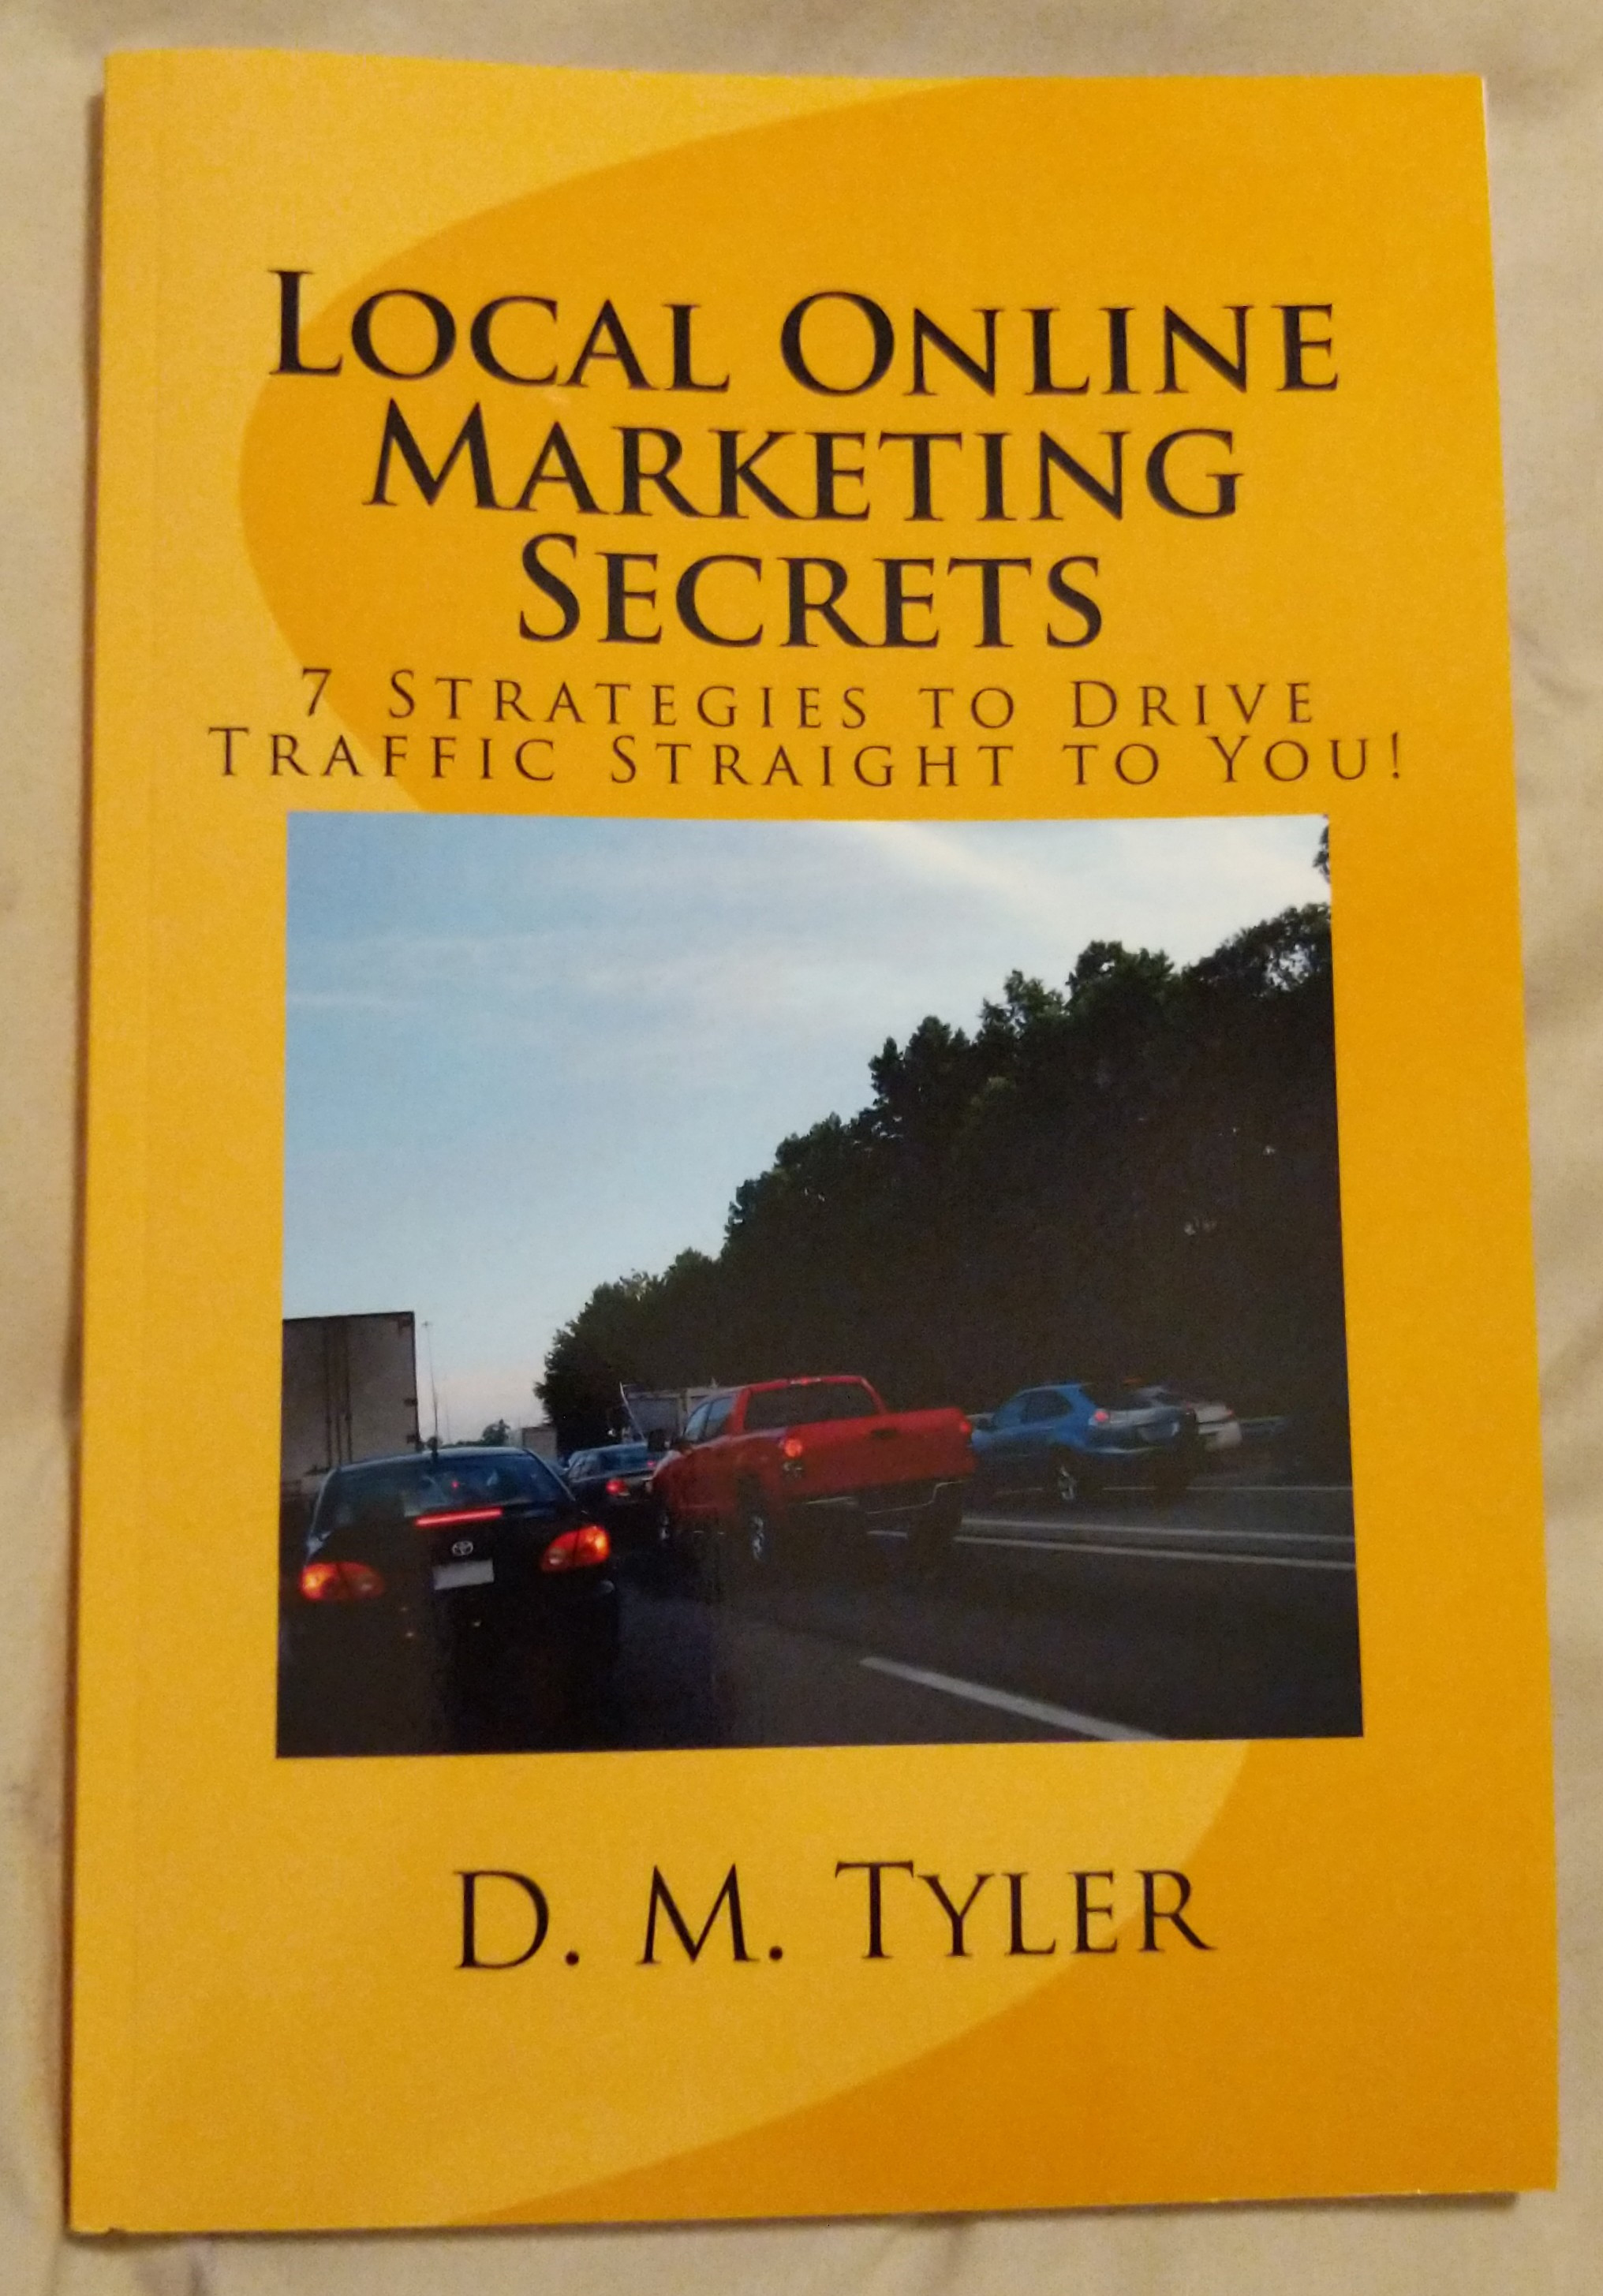 Local Online Marketing Secrets